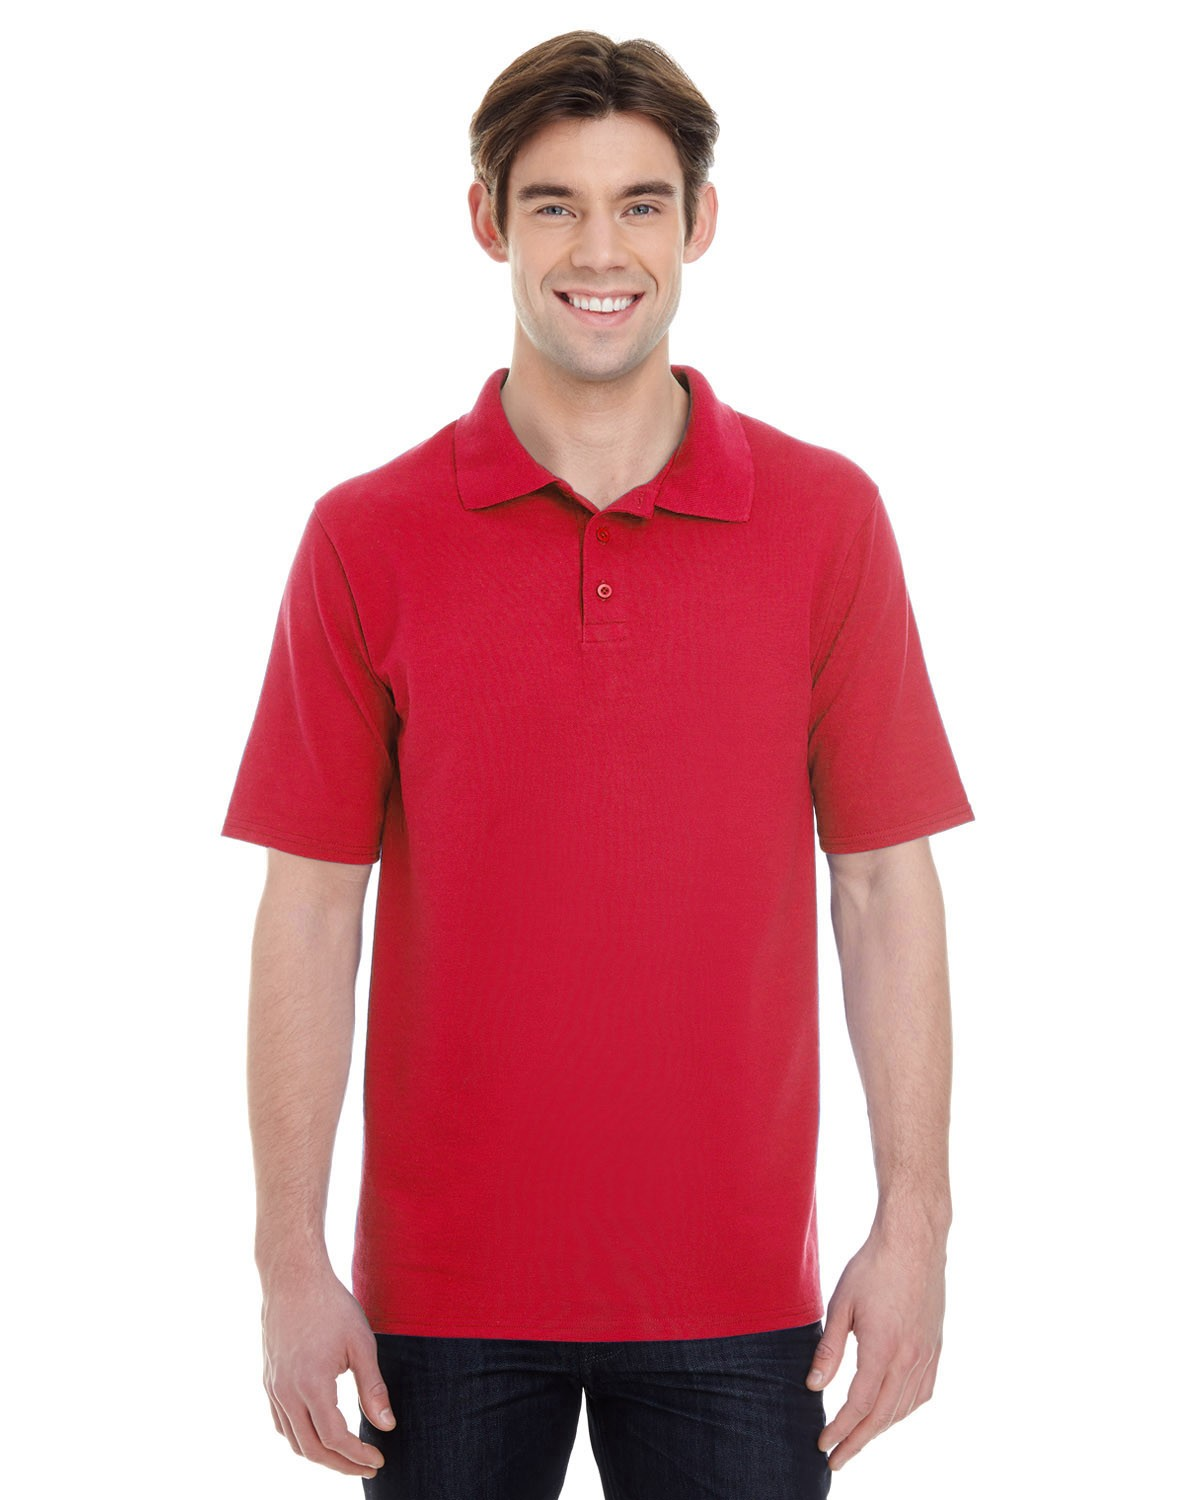 055P Hanes RED